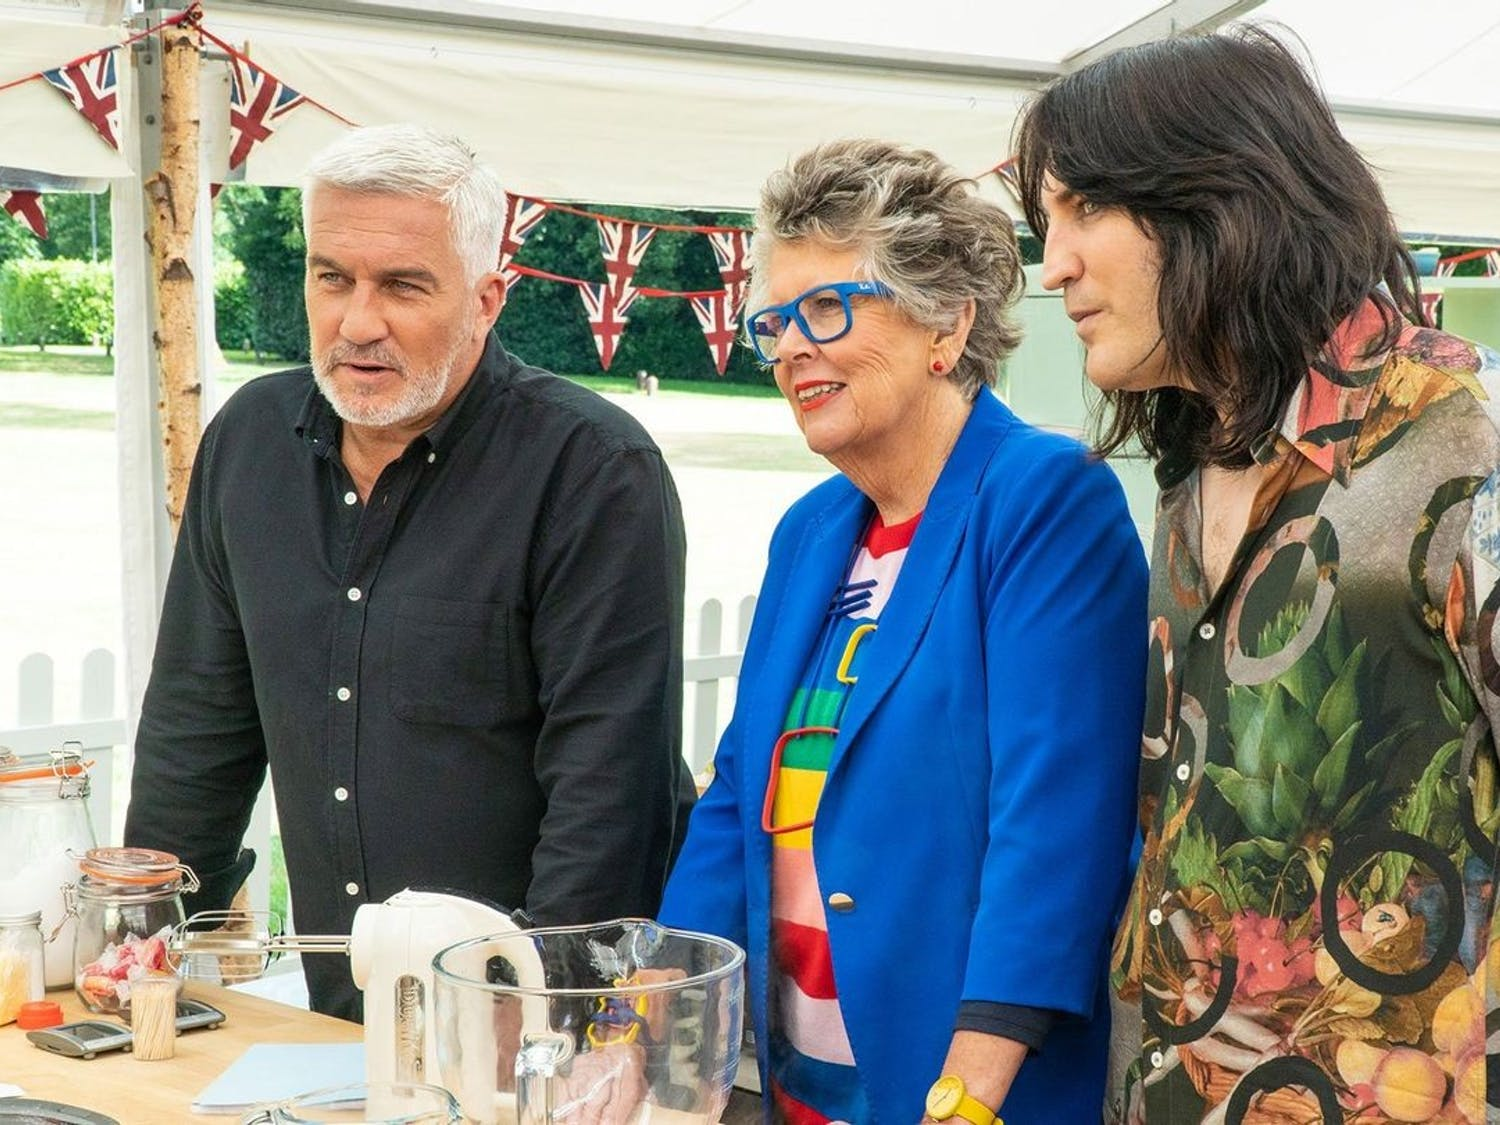 """In spite of pandemic restrictions, """"The Great British Baking Show"""" managed to deliver a mostly normal season to viewers in need of a little levity this holiday season."""